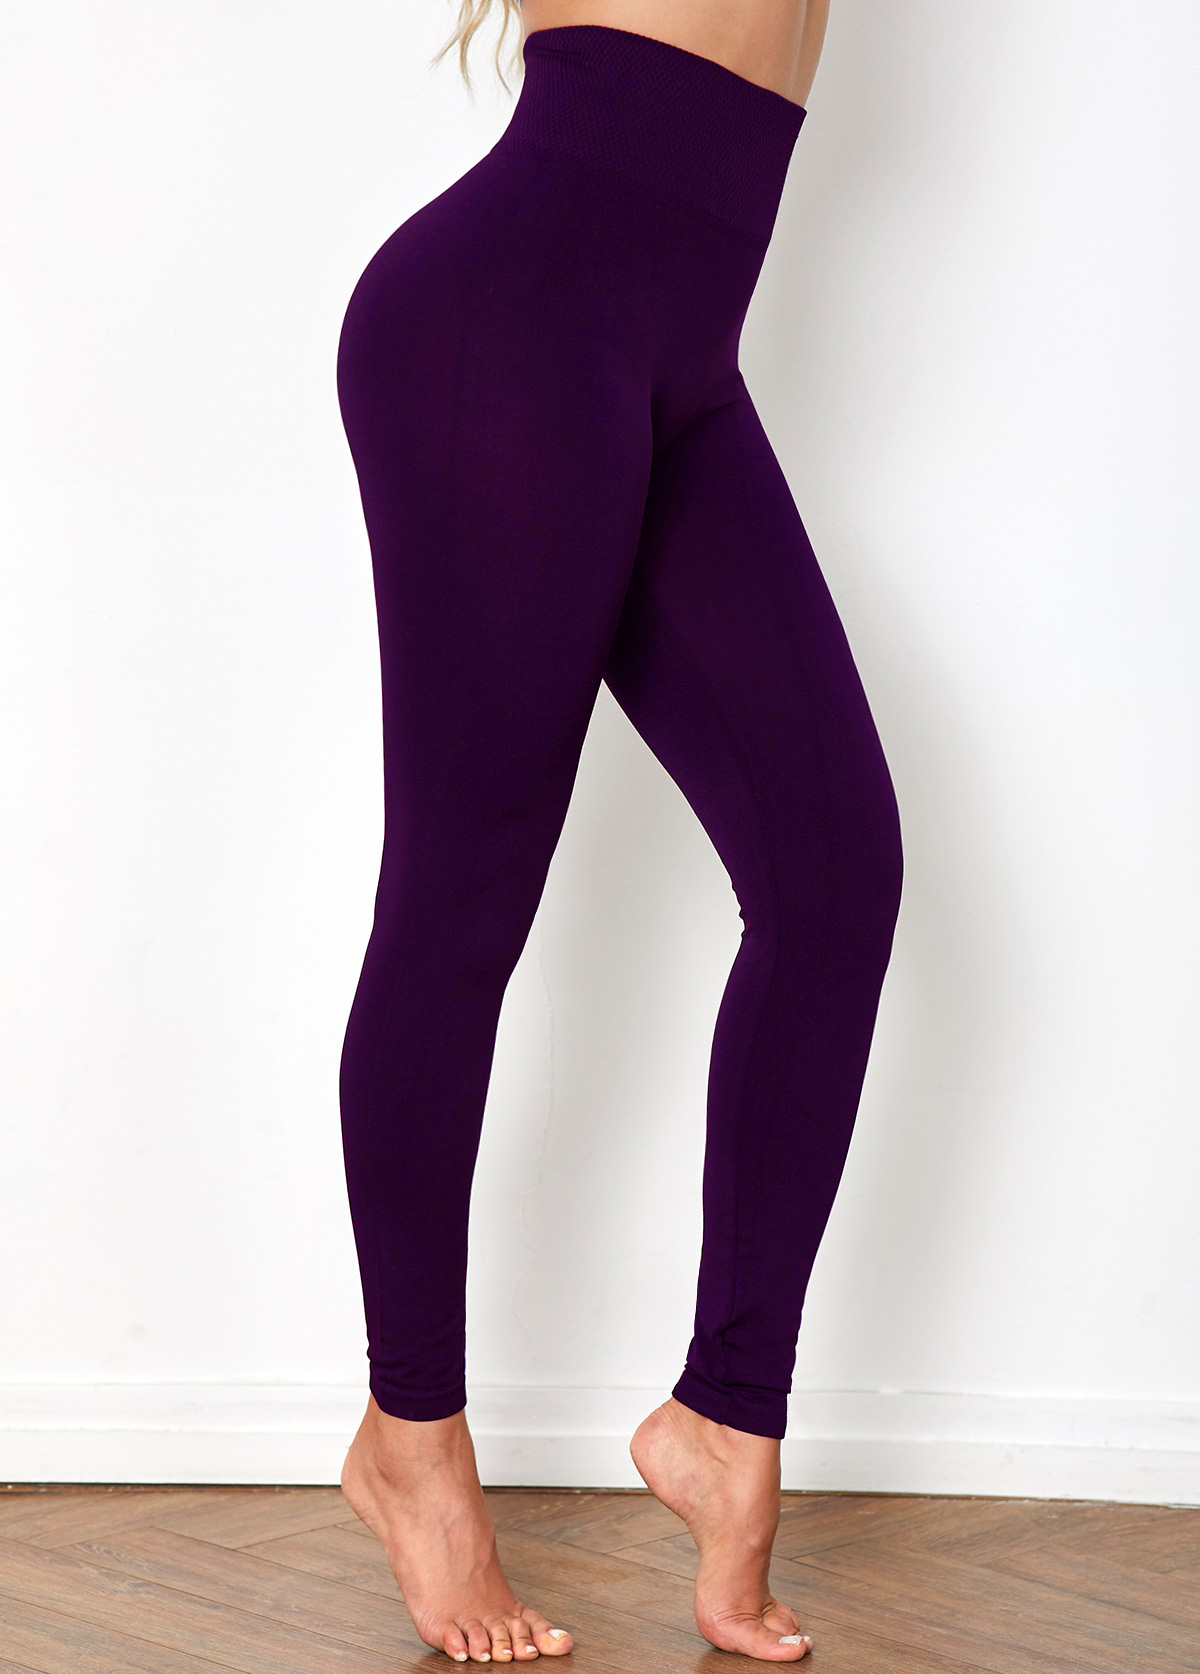 High Waist Super Elastic Legging Pants